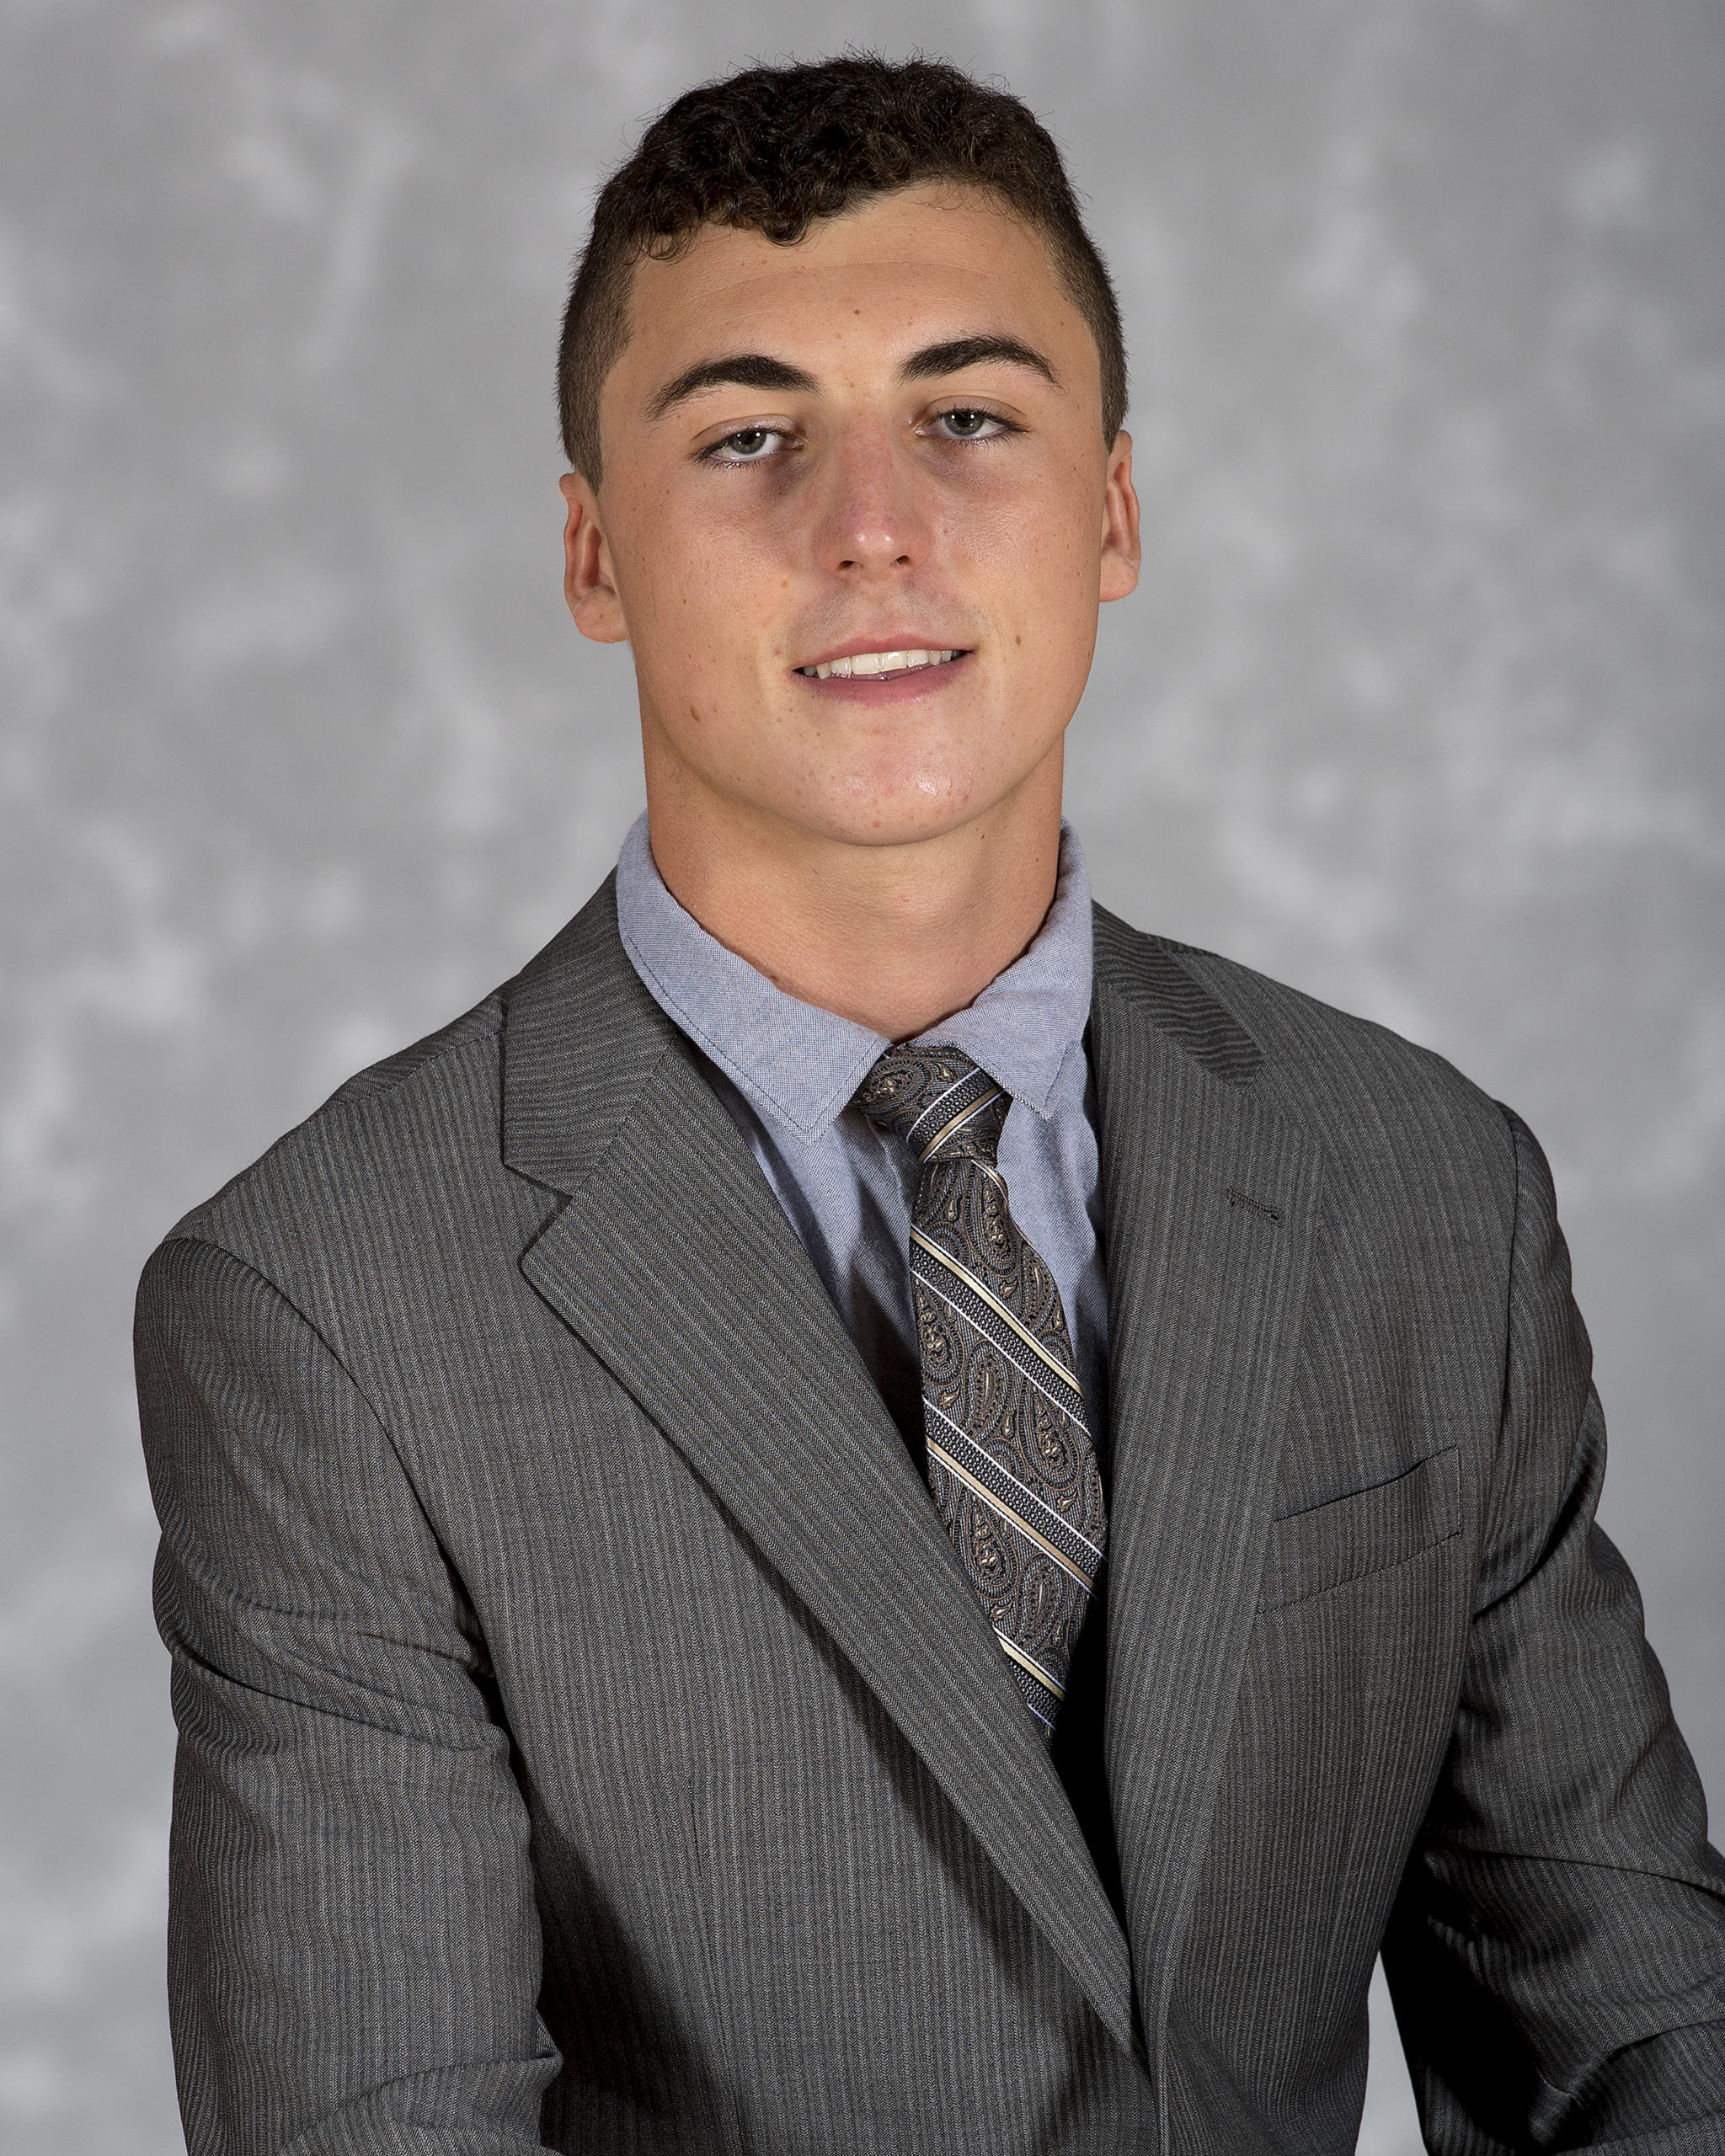 East Hampton graduate Ethan McCormac has been competing for the men's swim team at Marist College in Poughkeepsie.